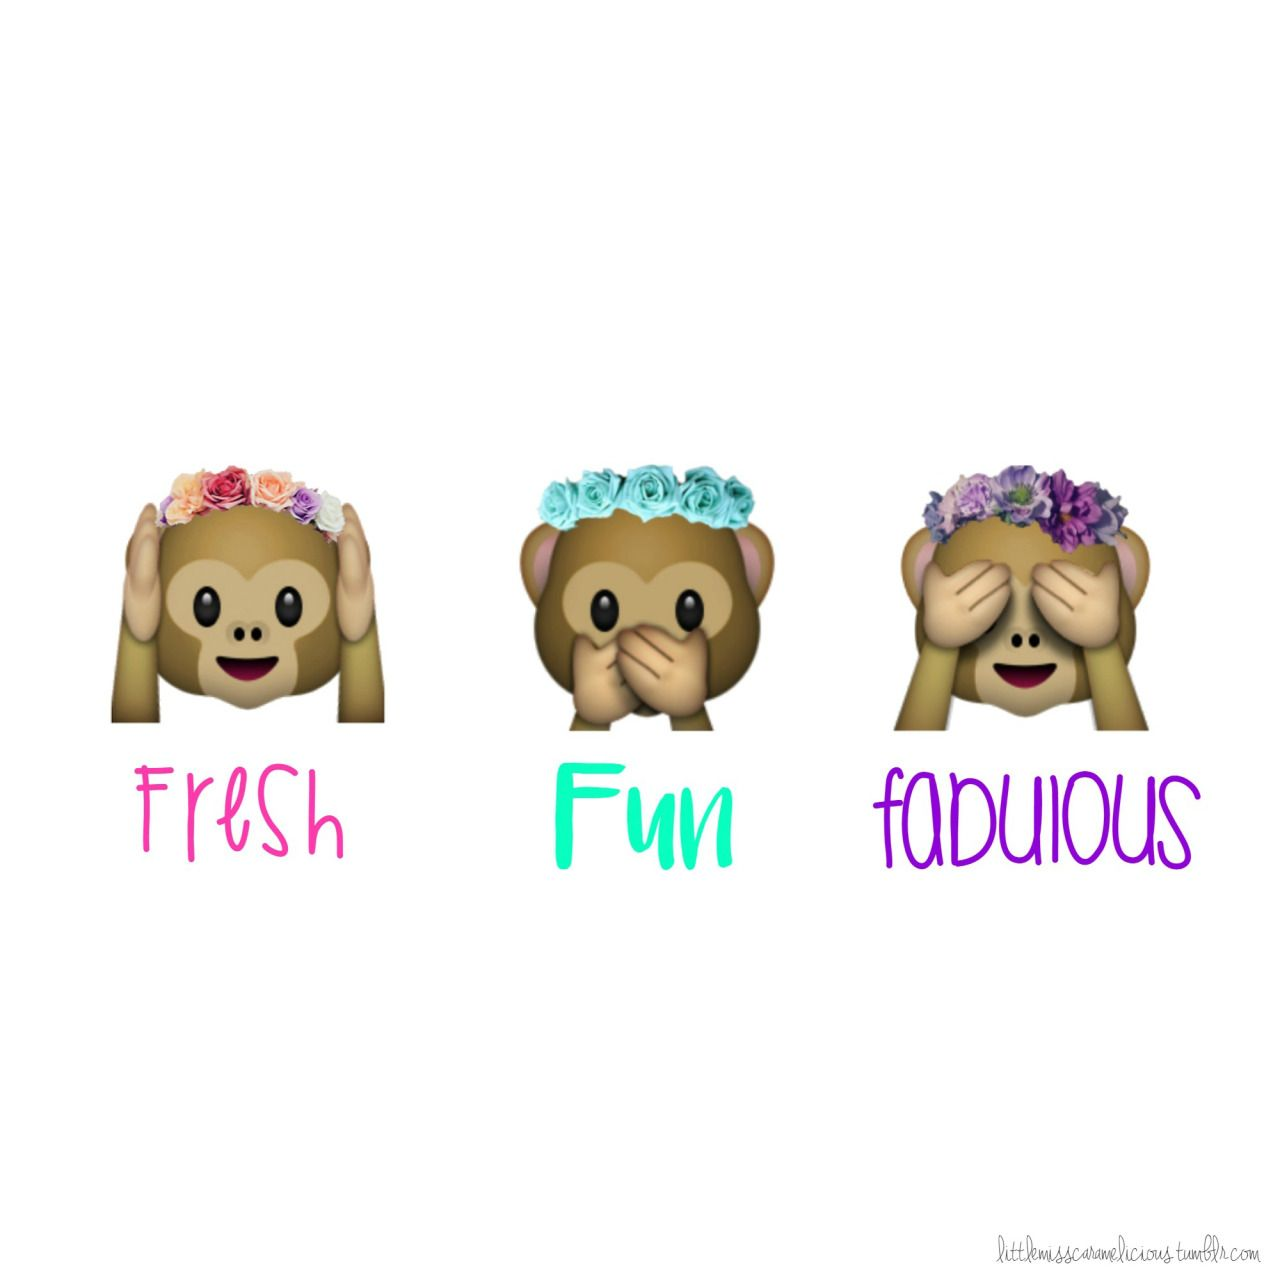 Wallpaper iphone monkey - Emoji Monkey With Flower Crown Wallpaper Google Search